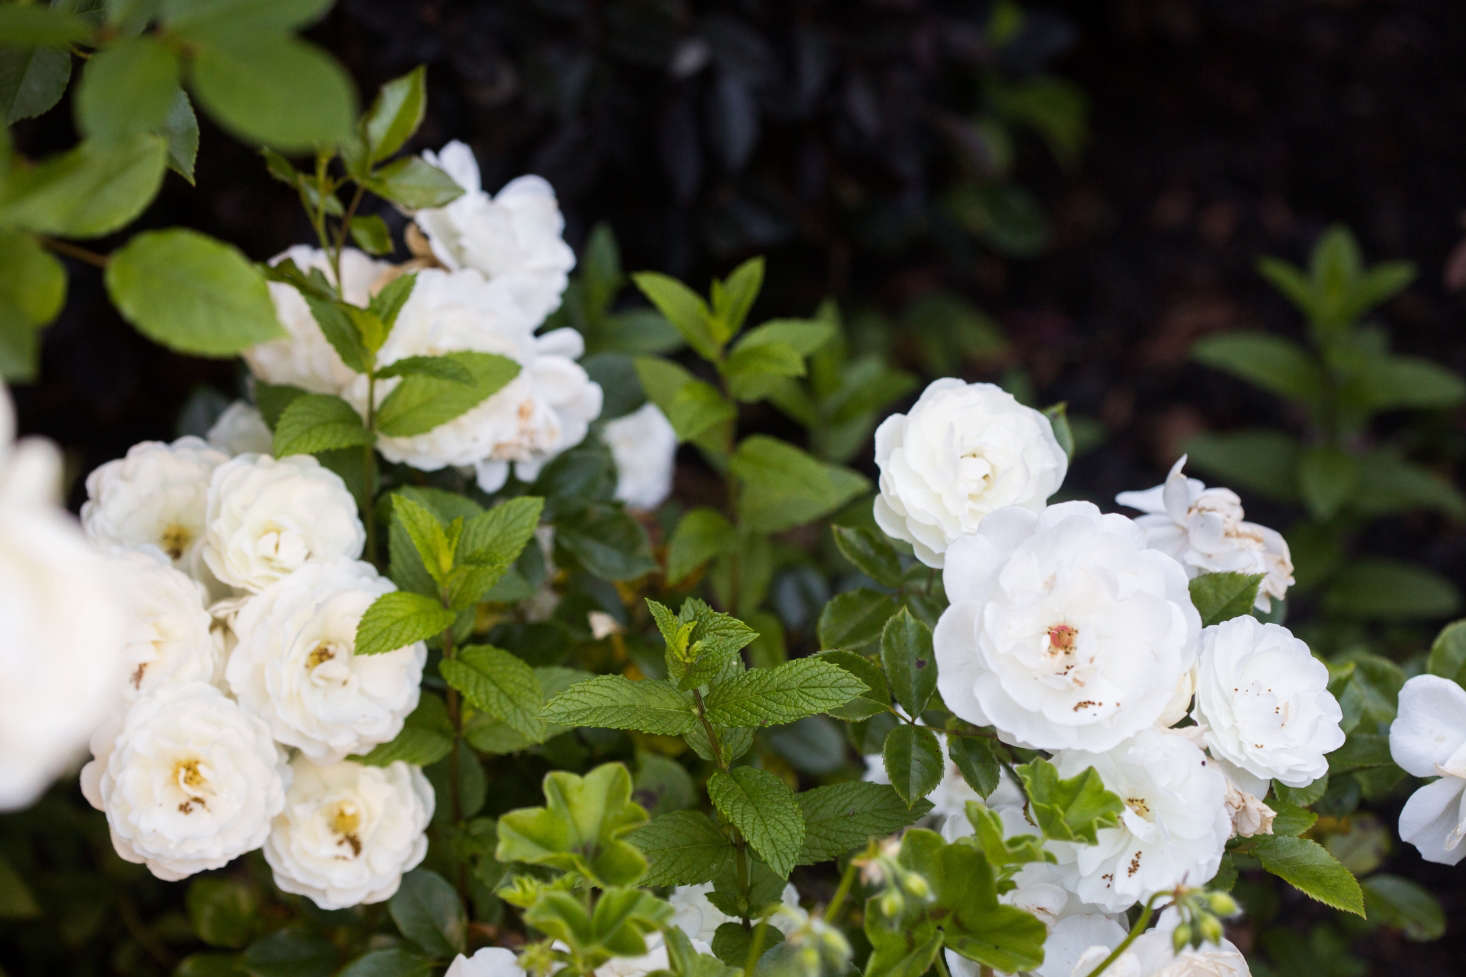 These are not the fragile, finicky roses that florists sell and collectors prize. The  plants I bought—white Iceberg rose bushes, climbing New Dawn roses, and generic landscape roses labeled simply &#8